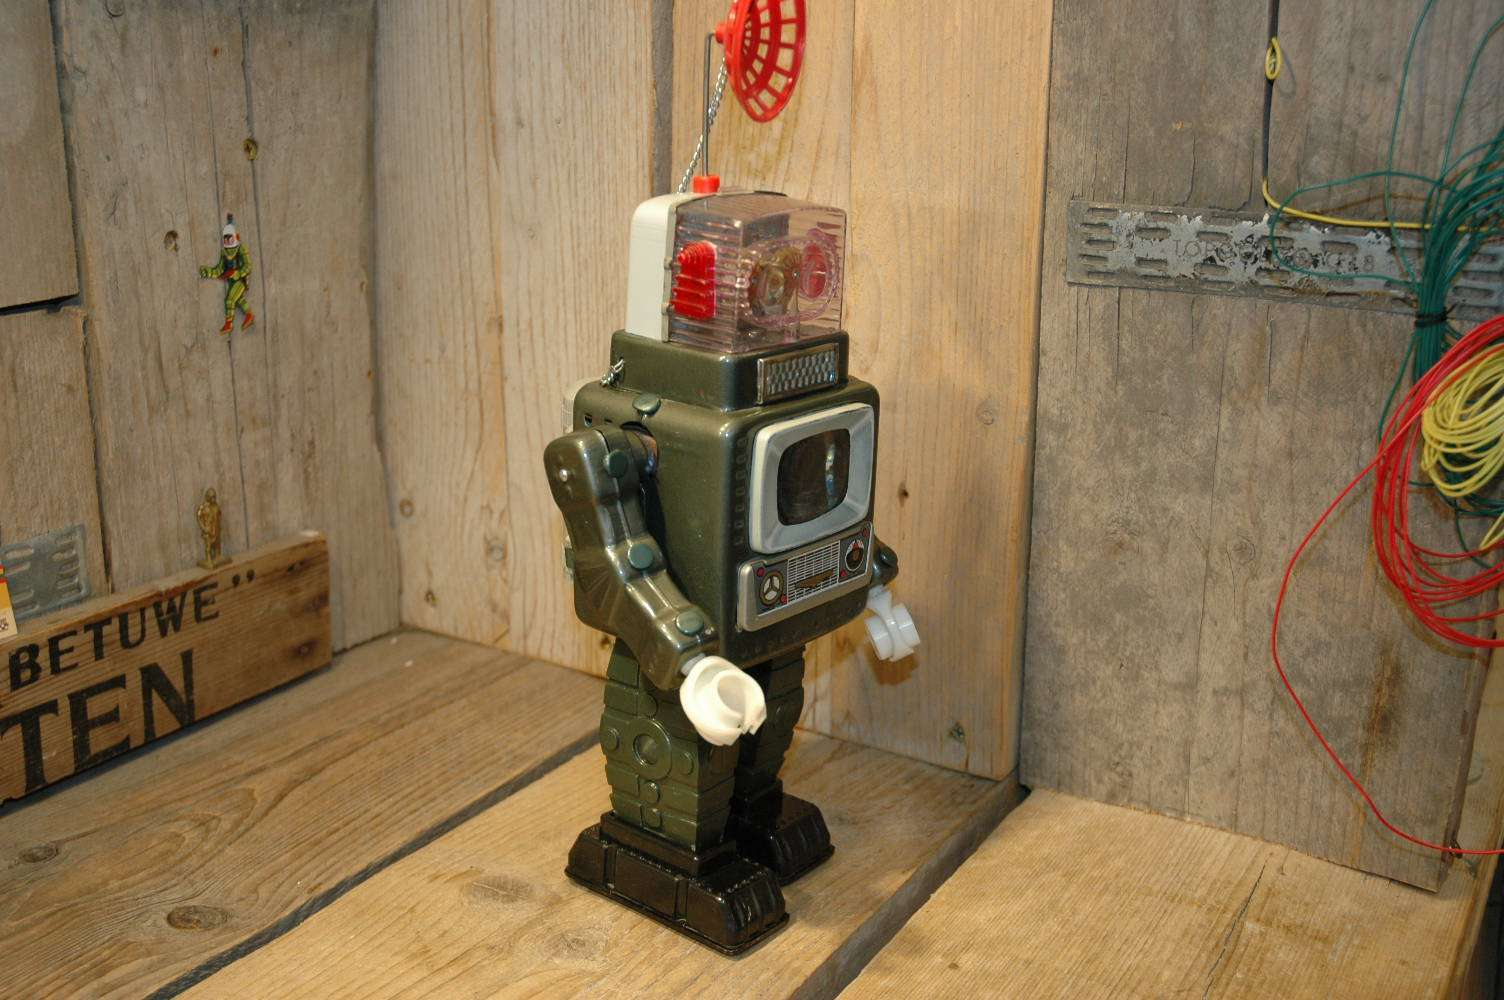 Alps-television spaceman robot